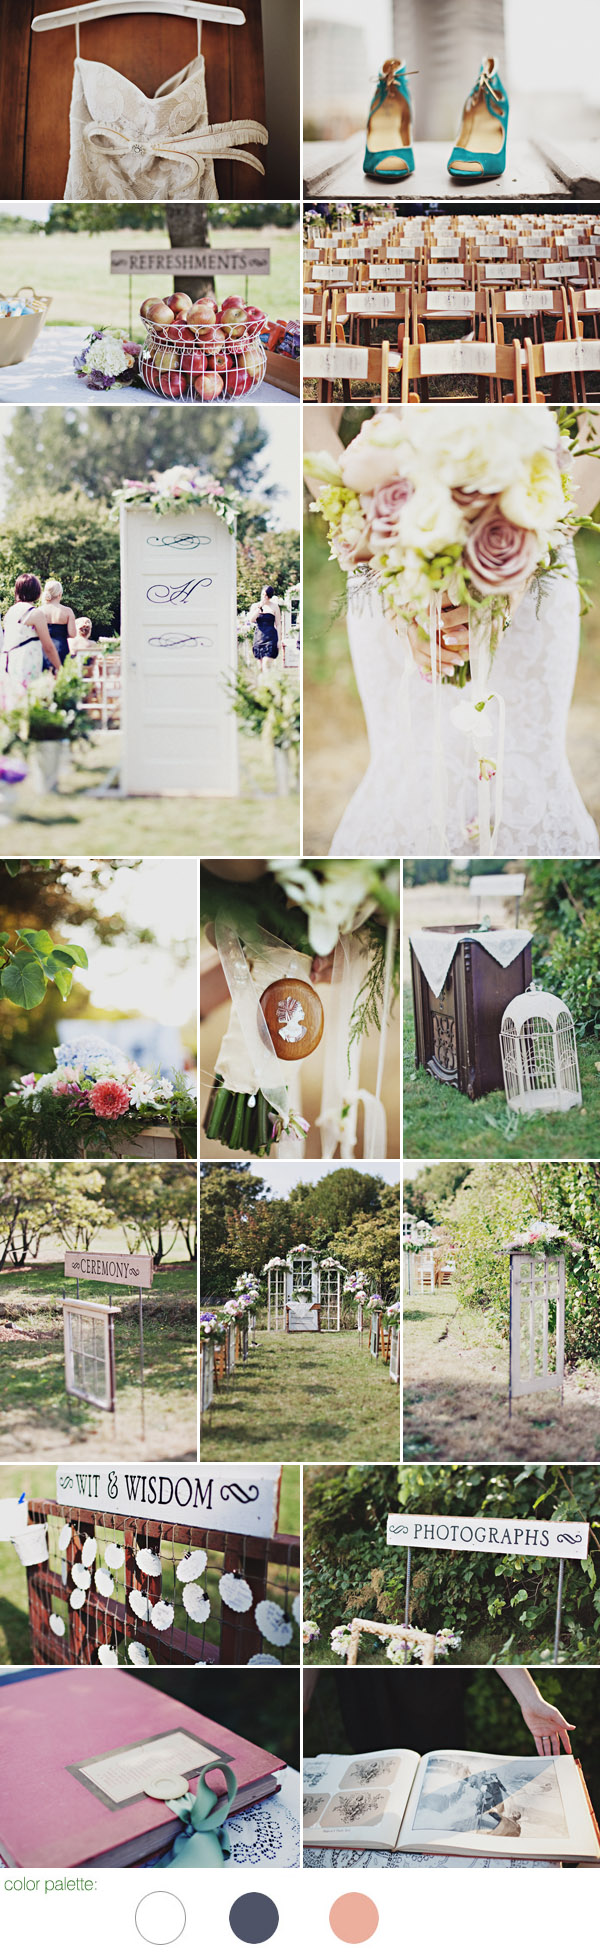 romantic and vintage garden wedding at the University of Washington's Botanic Gardens and Seattle's SODO Park by Herban Feast, photos by Sean Flanigan Photography